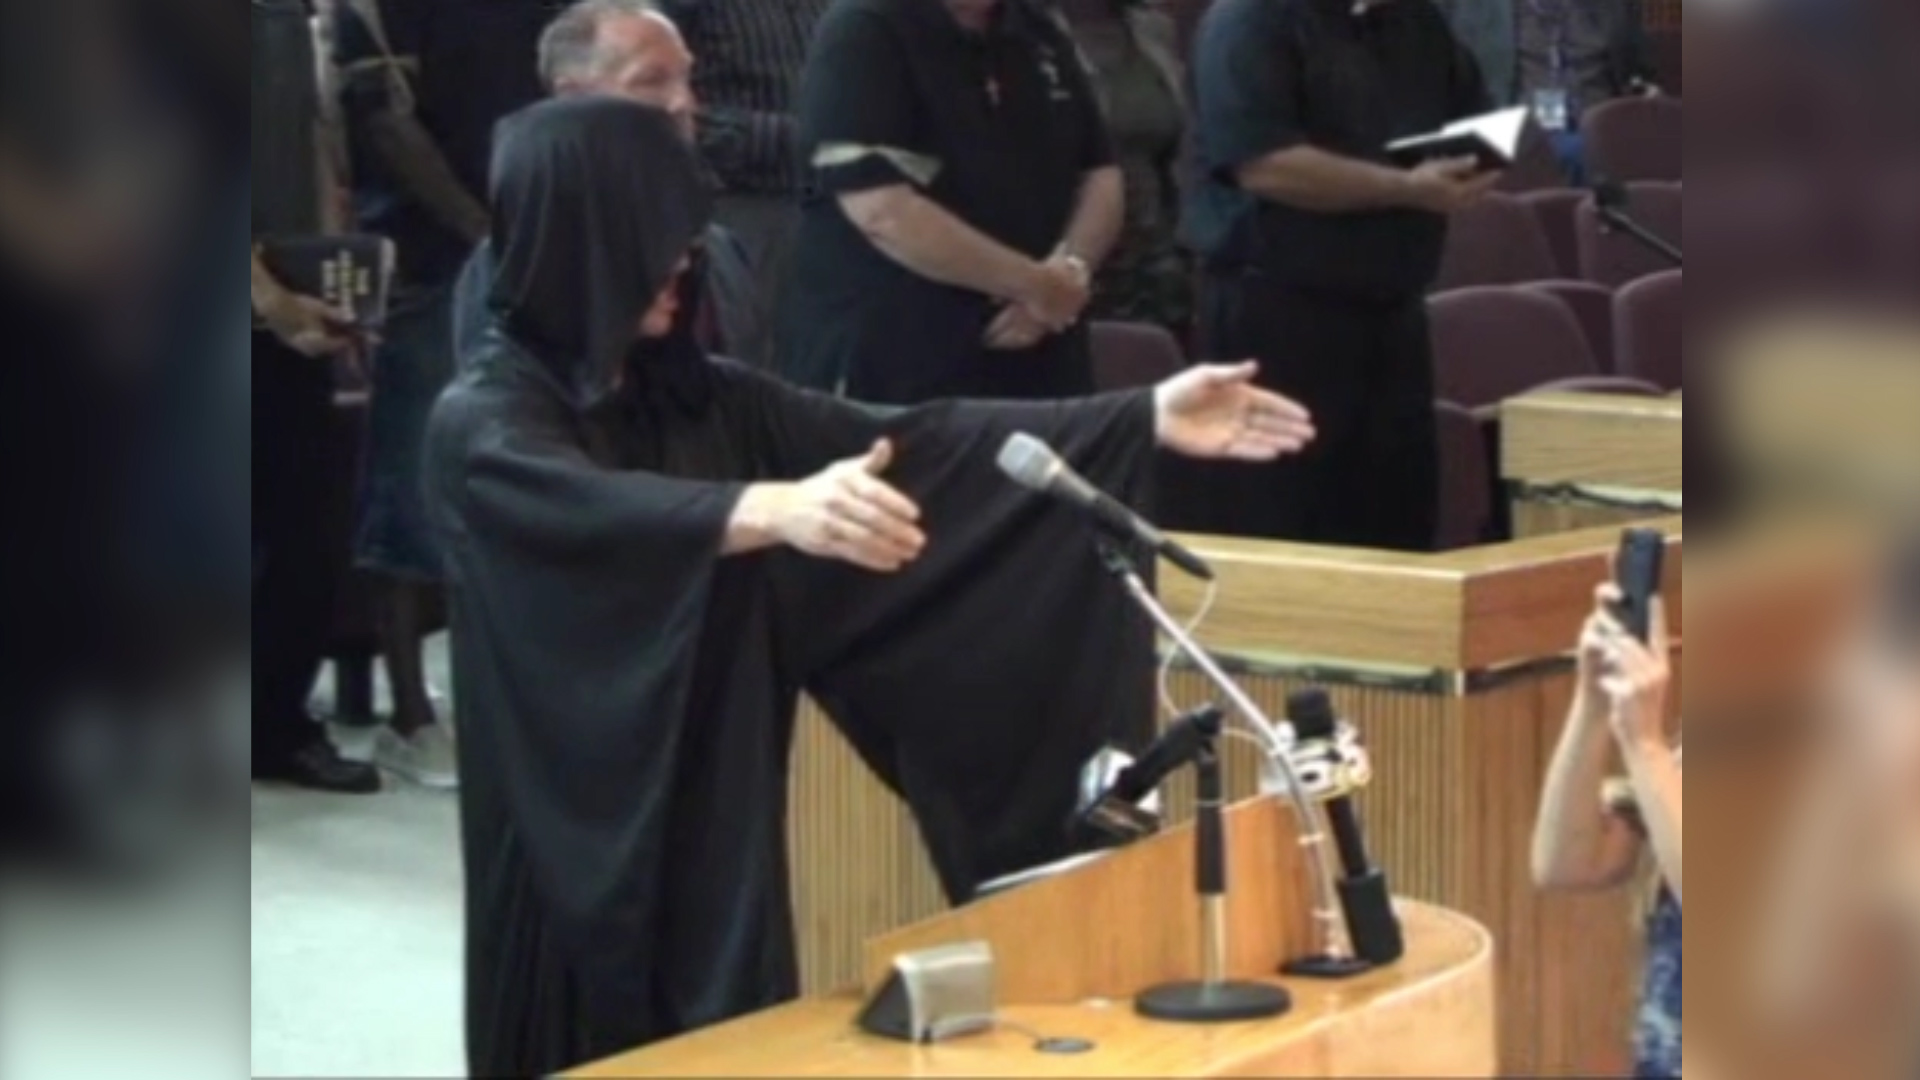 Satanist opens city council meeting, and, well, just watch